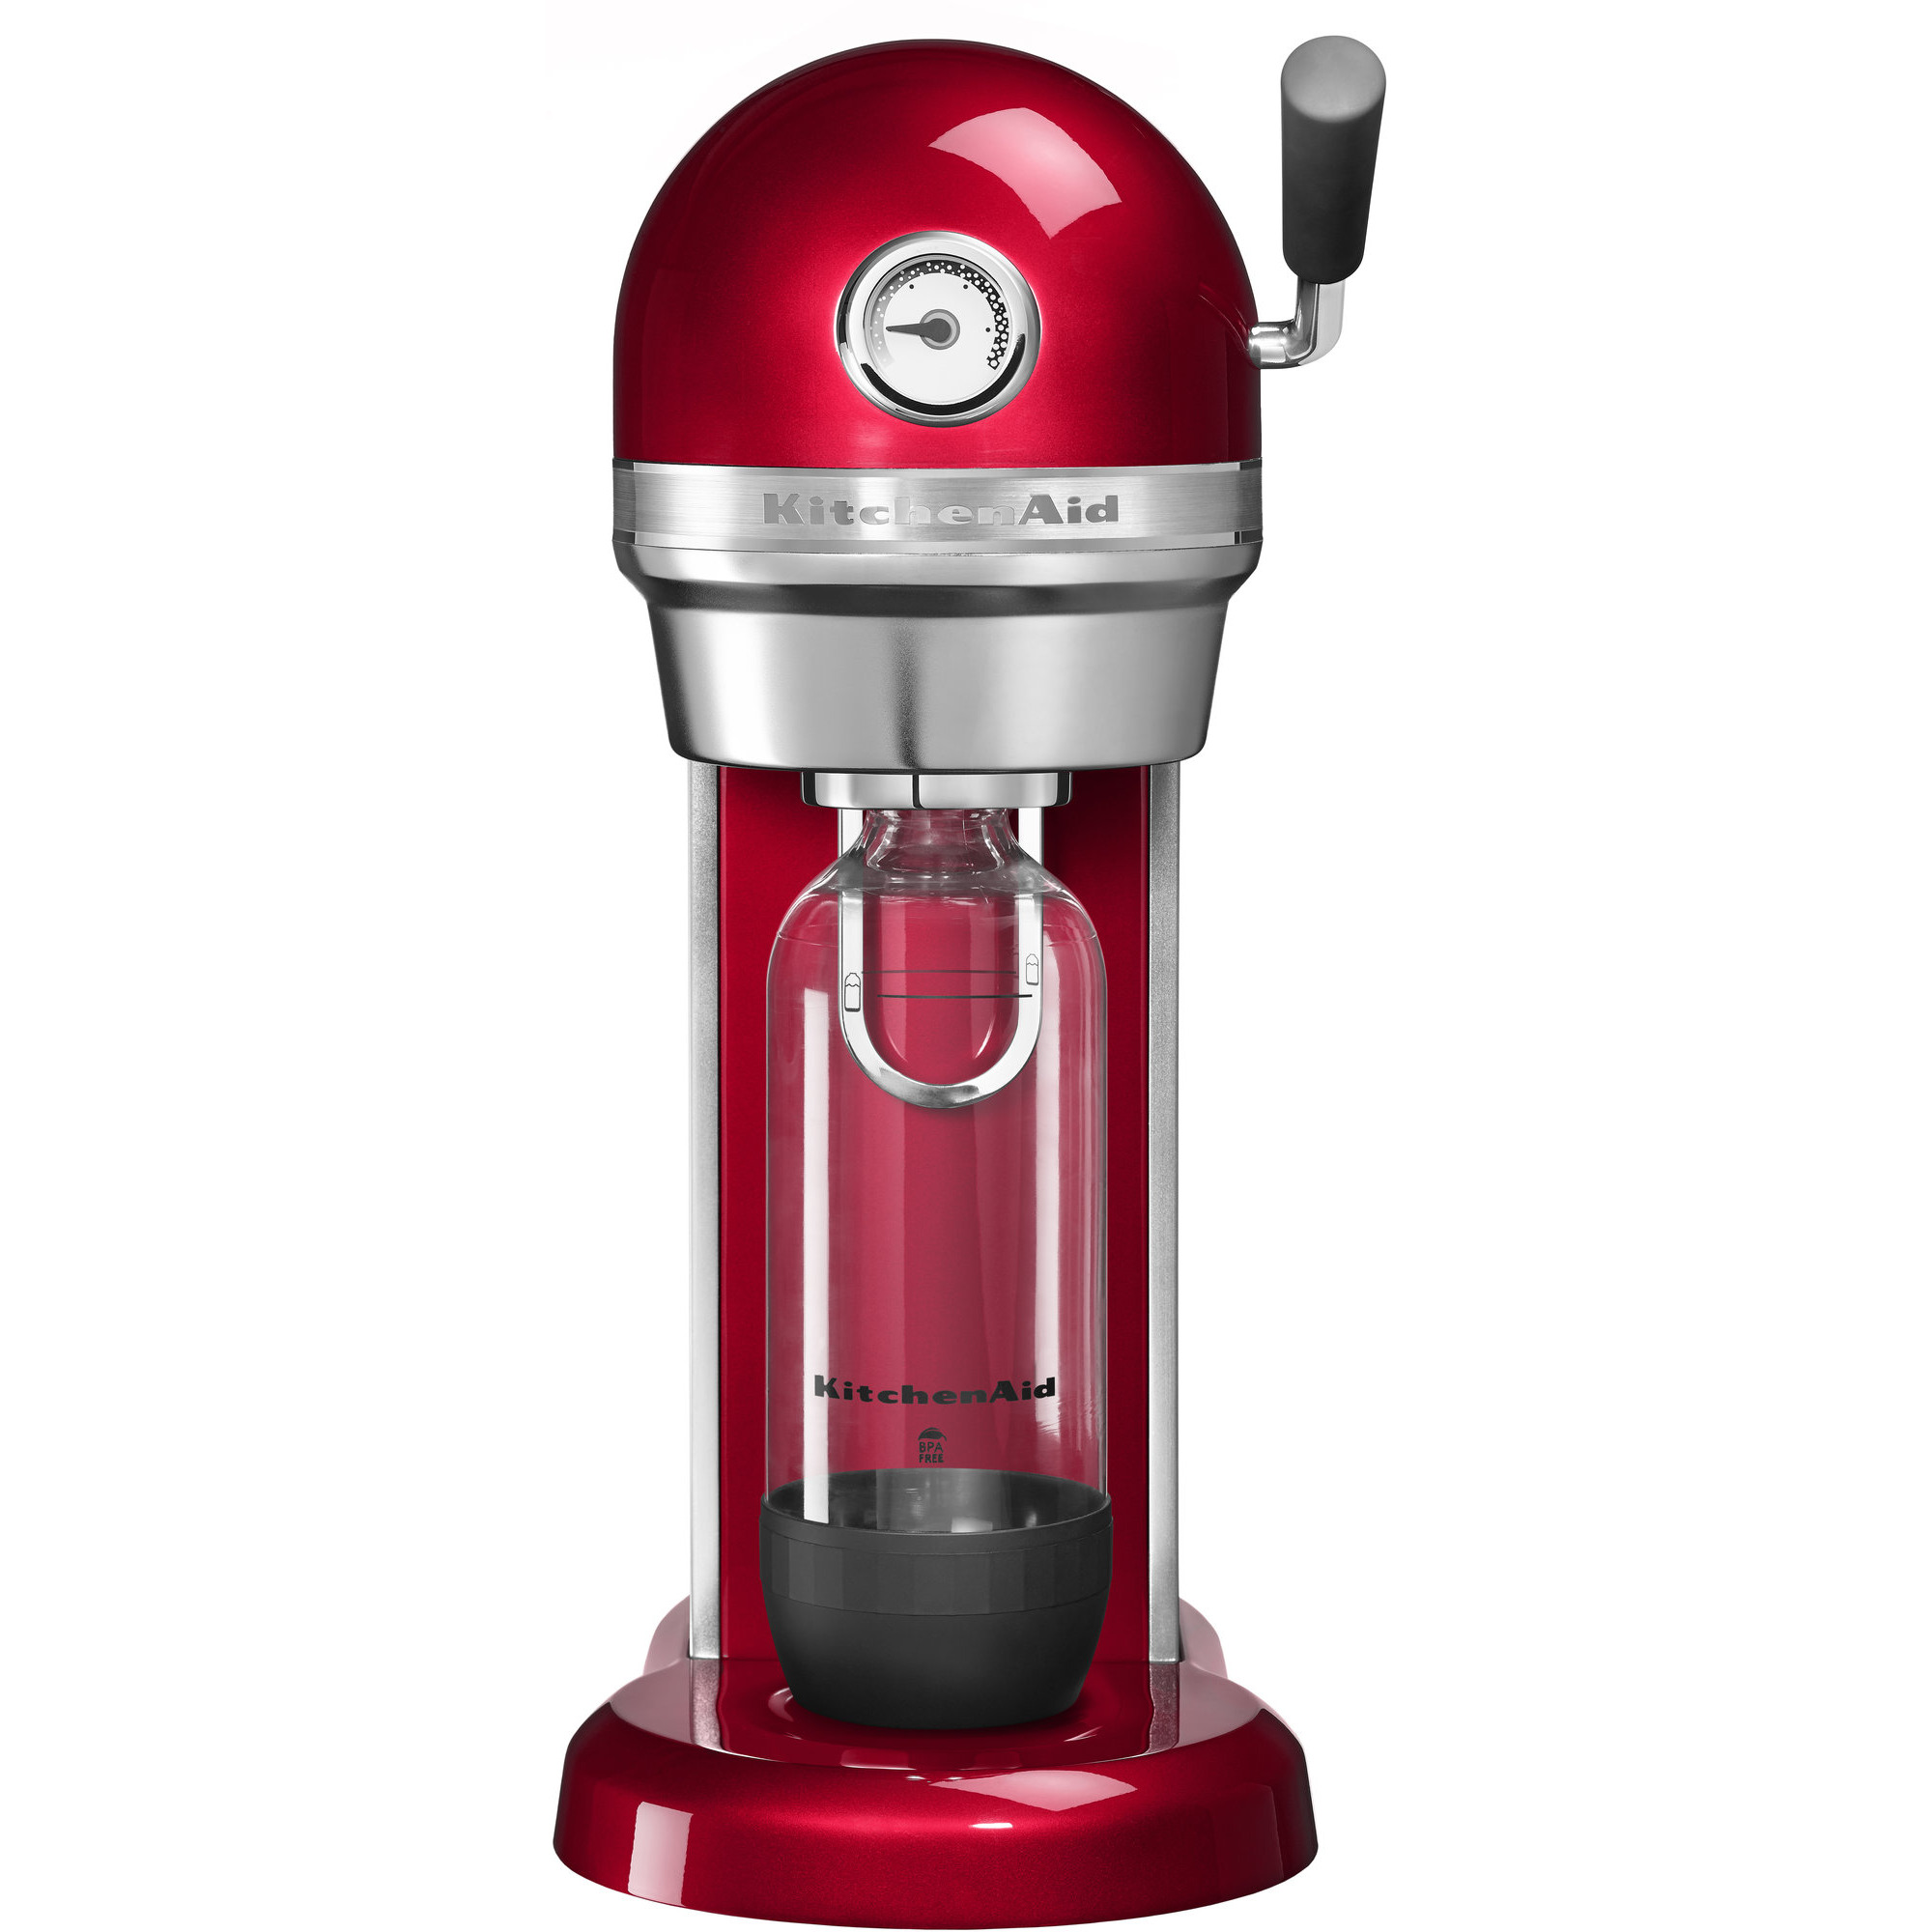 KitchenAid Kolsyremaskin Röd Metallic